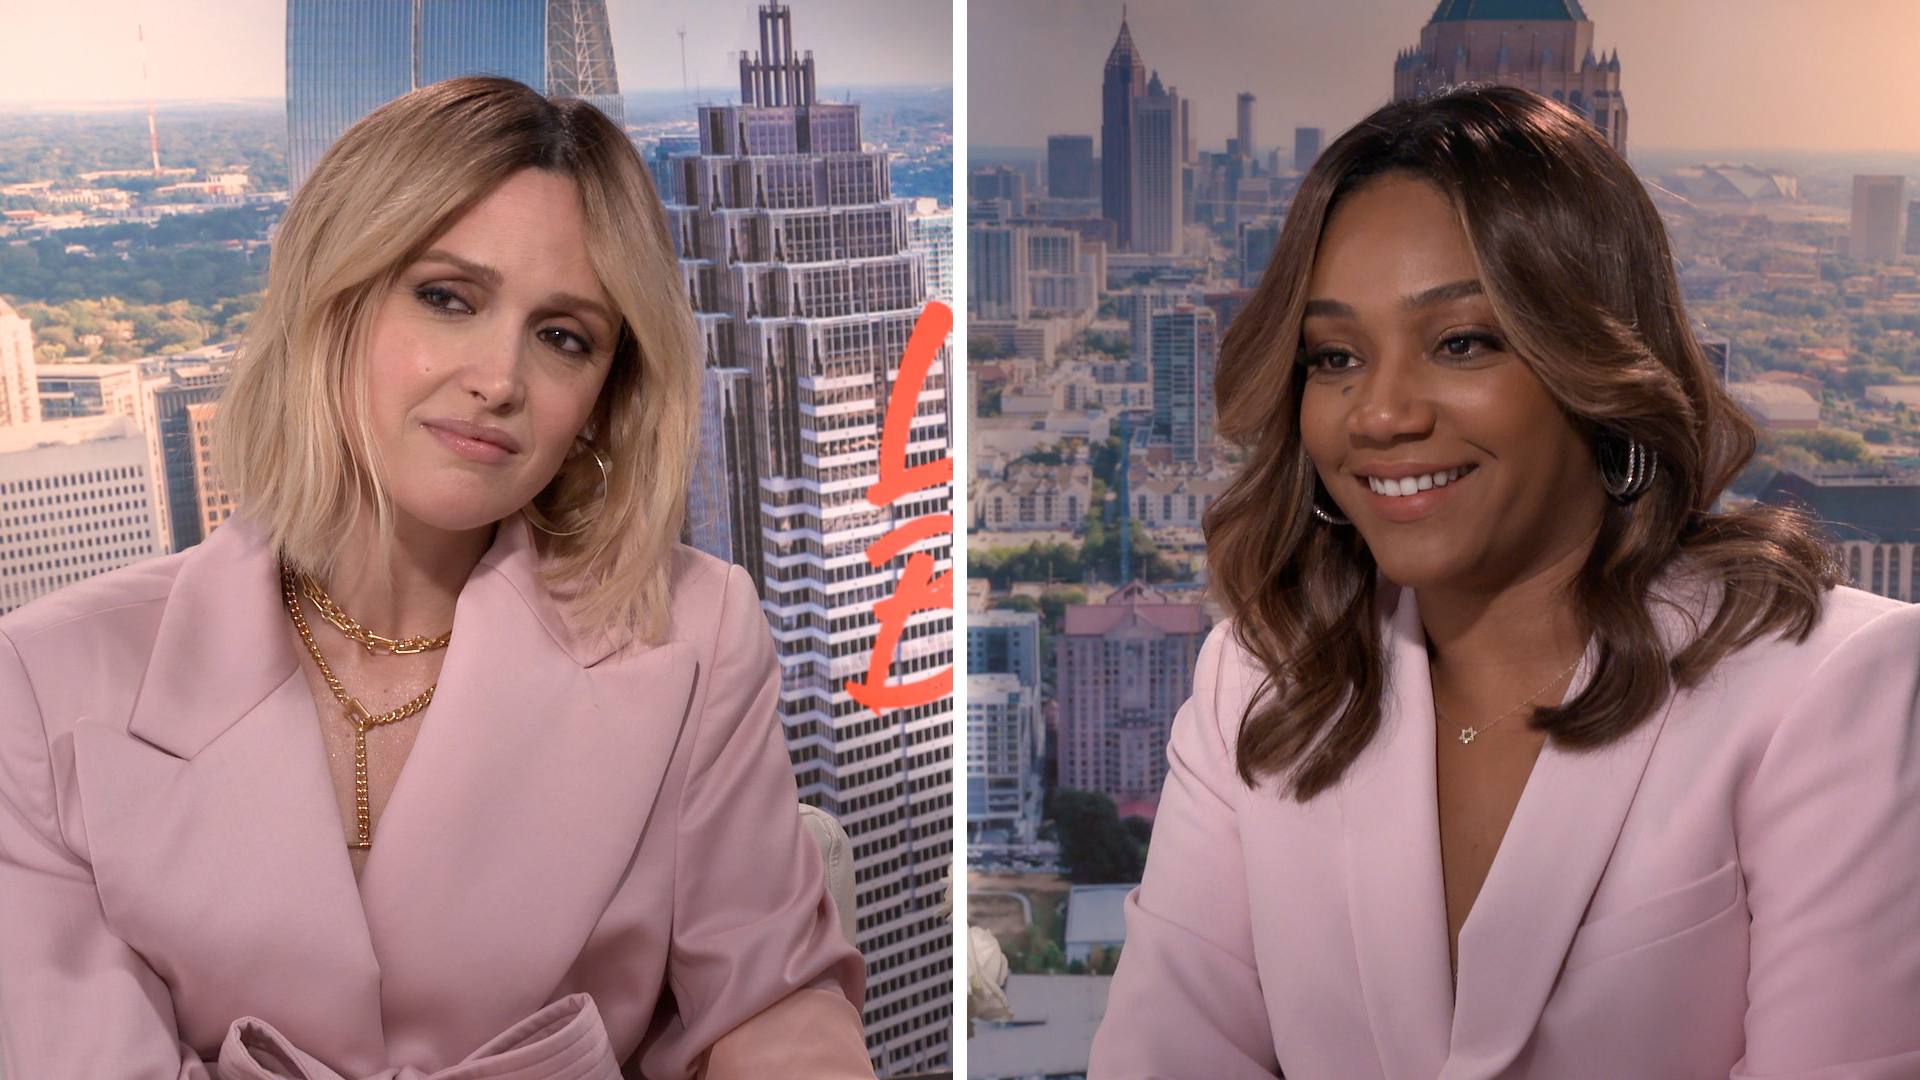 Tiffany Haddish and Rose Byrne talk chasing their dreams